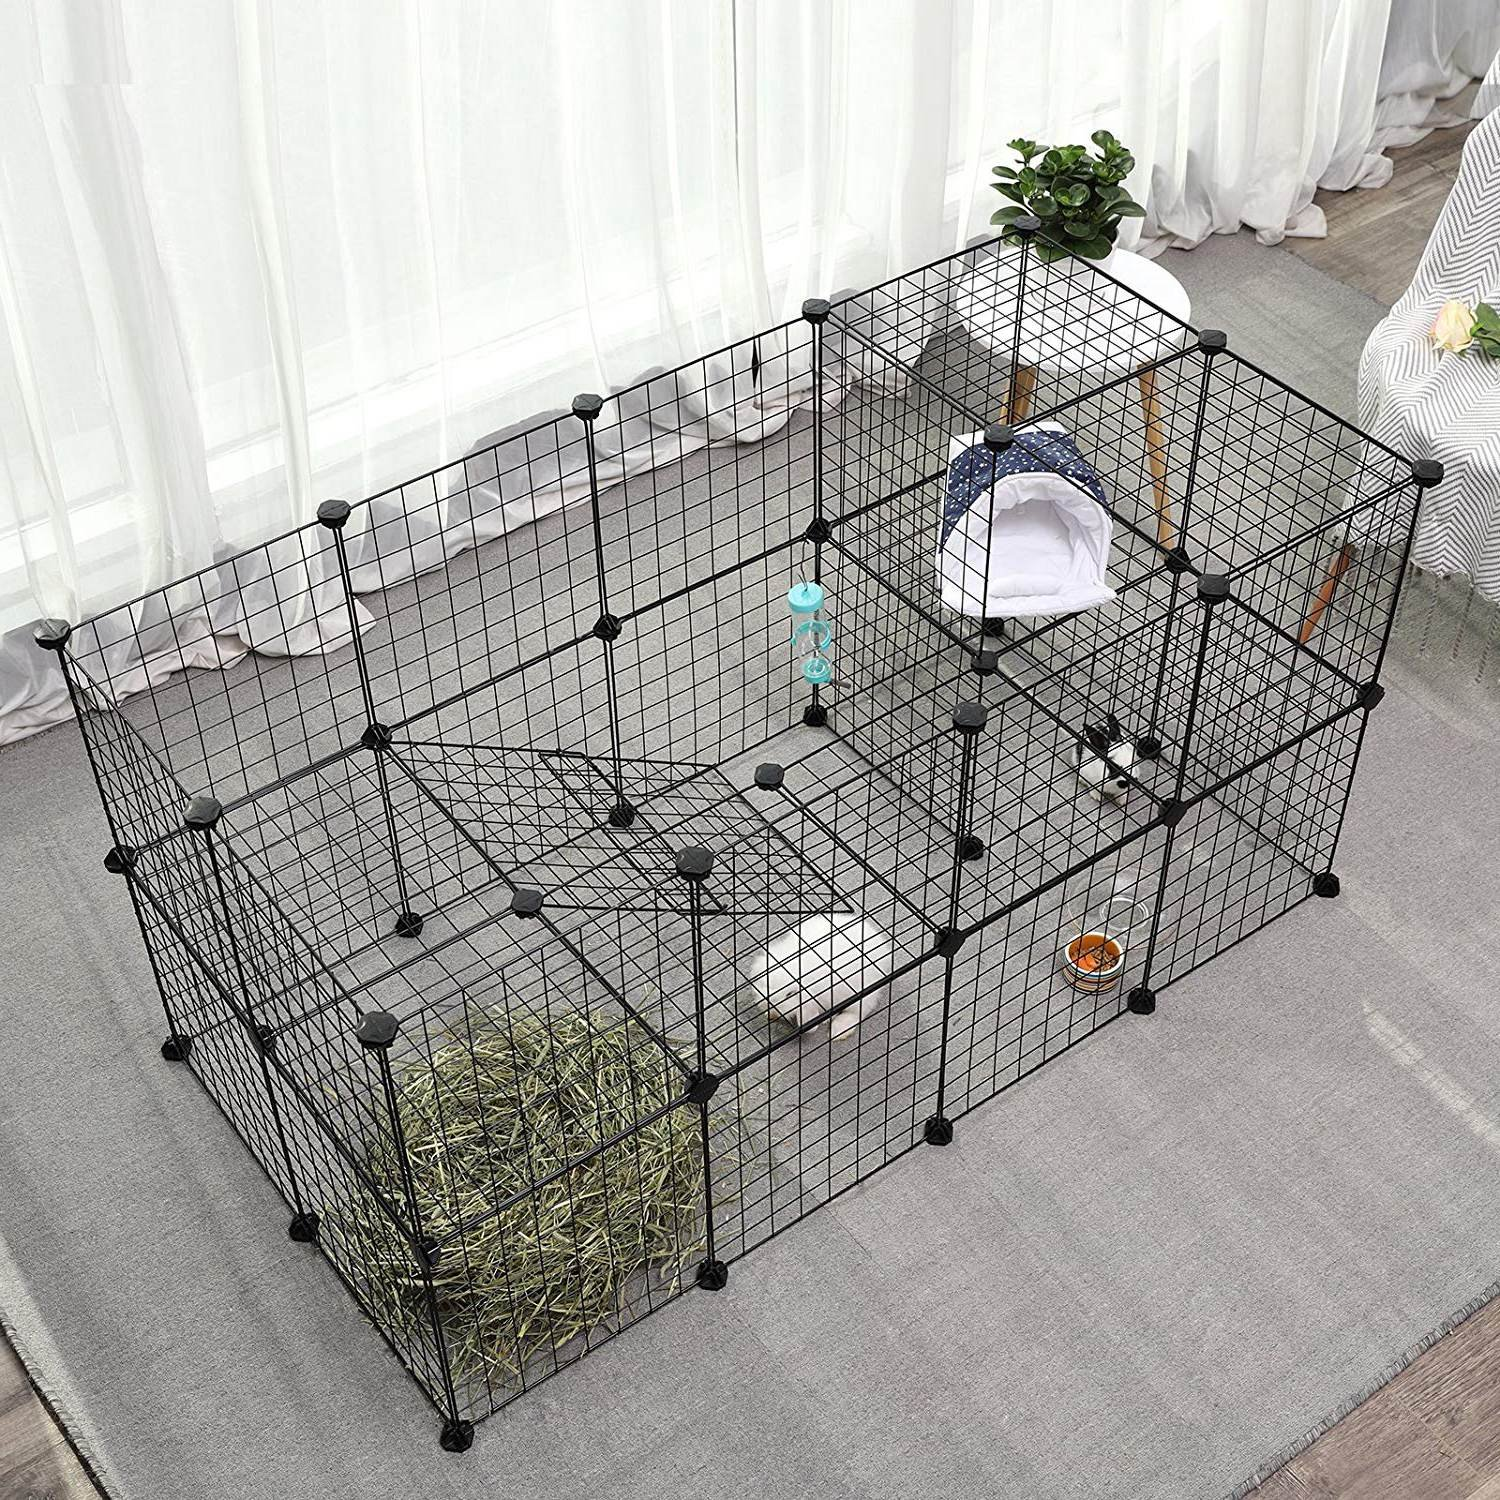 JYYG Small Pet Pen Bunny Cage Dogs Playpen Indoor Out Door Animal Fence Puppy Guinea Pigs, Dwarf Rabbits PET-F (36 Panels, Black) by JYYG (Image #4)